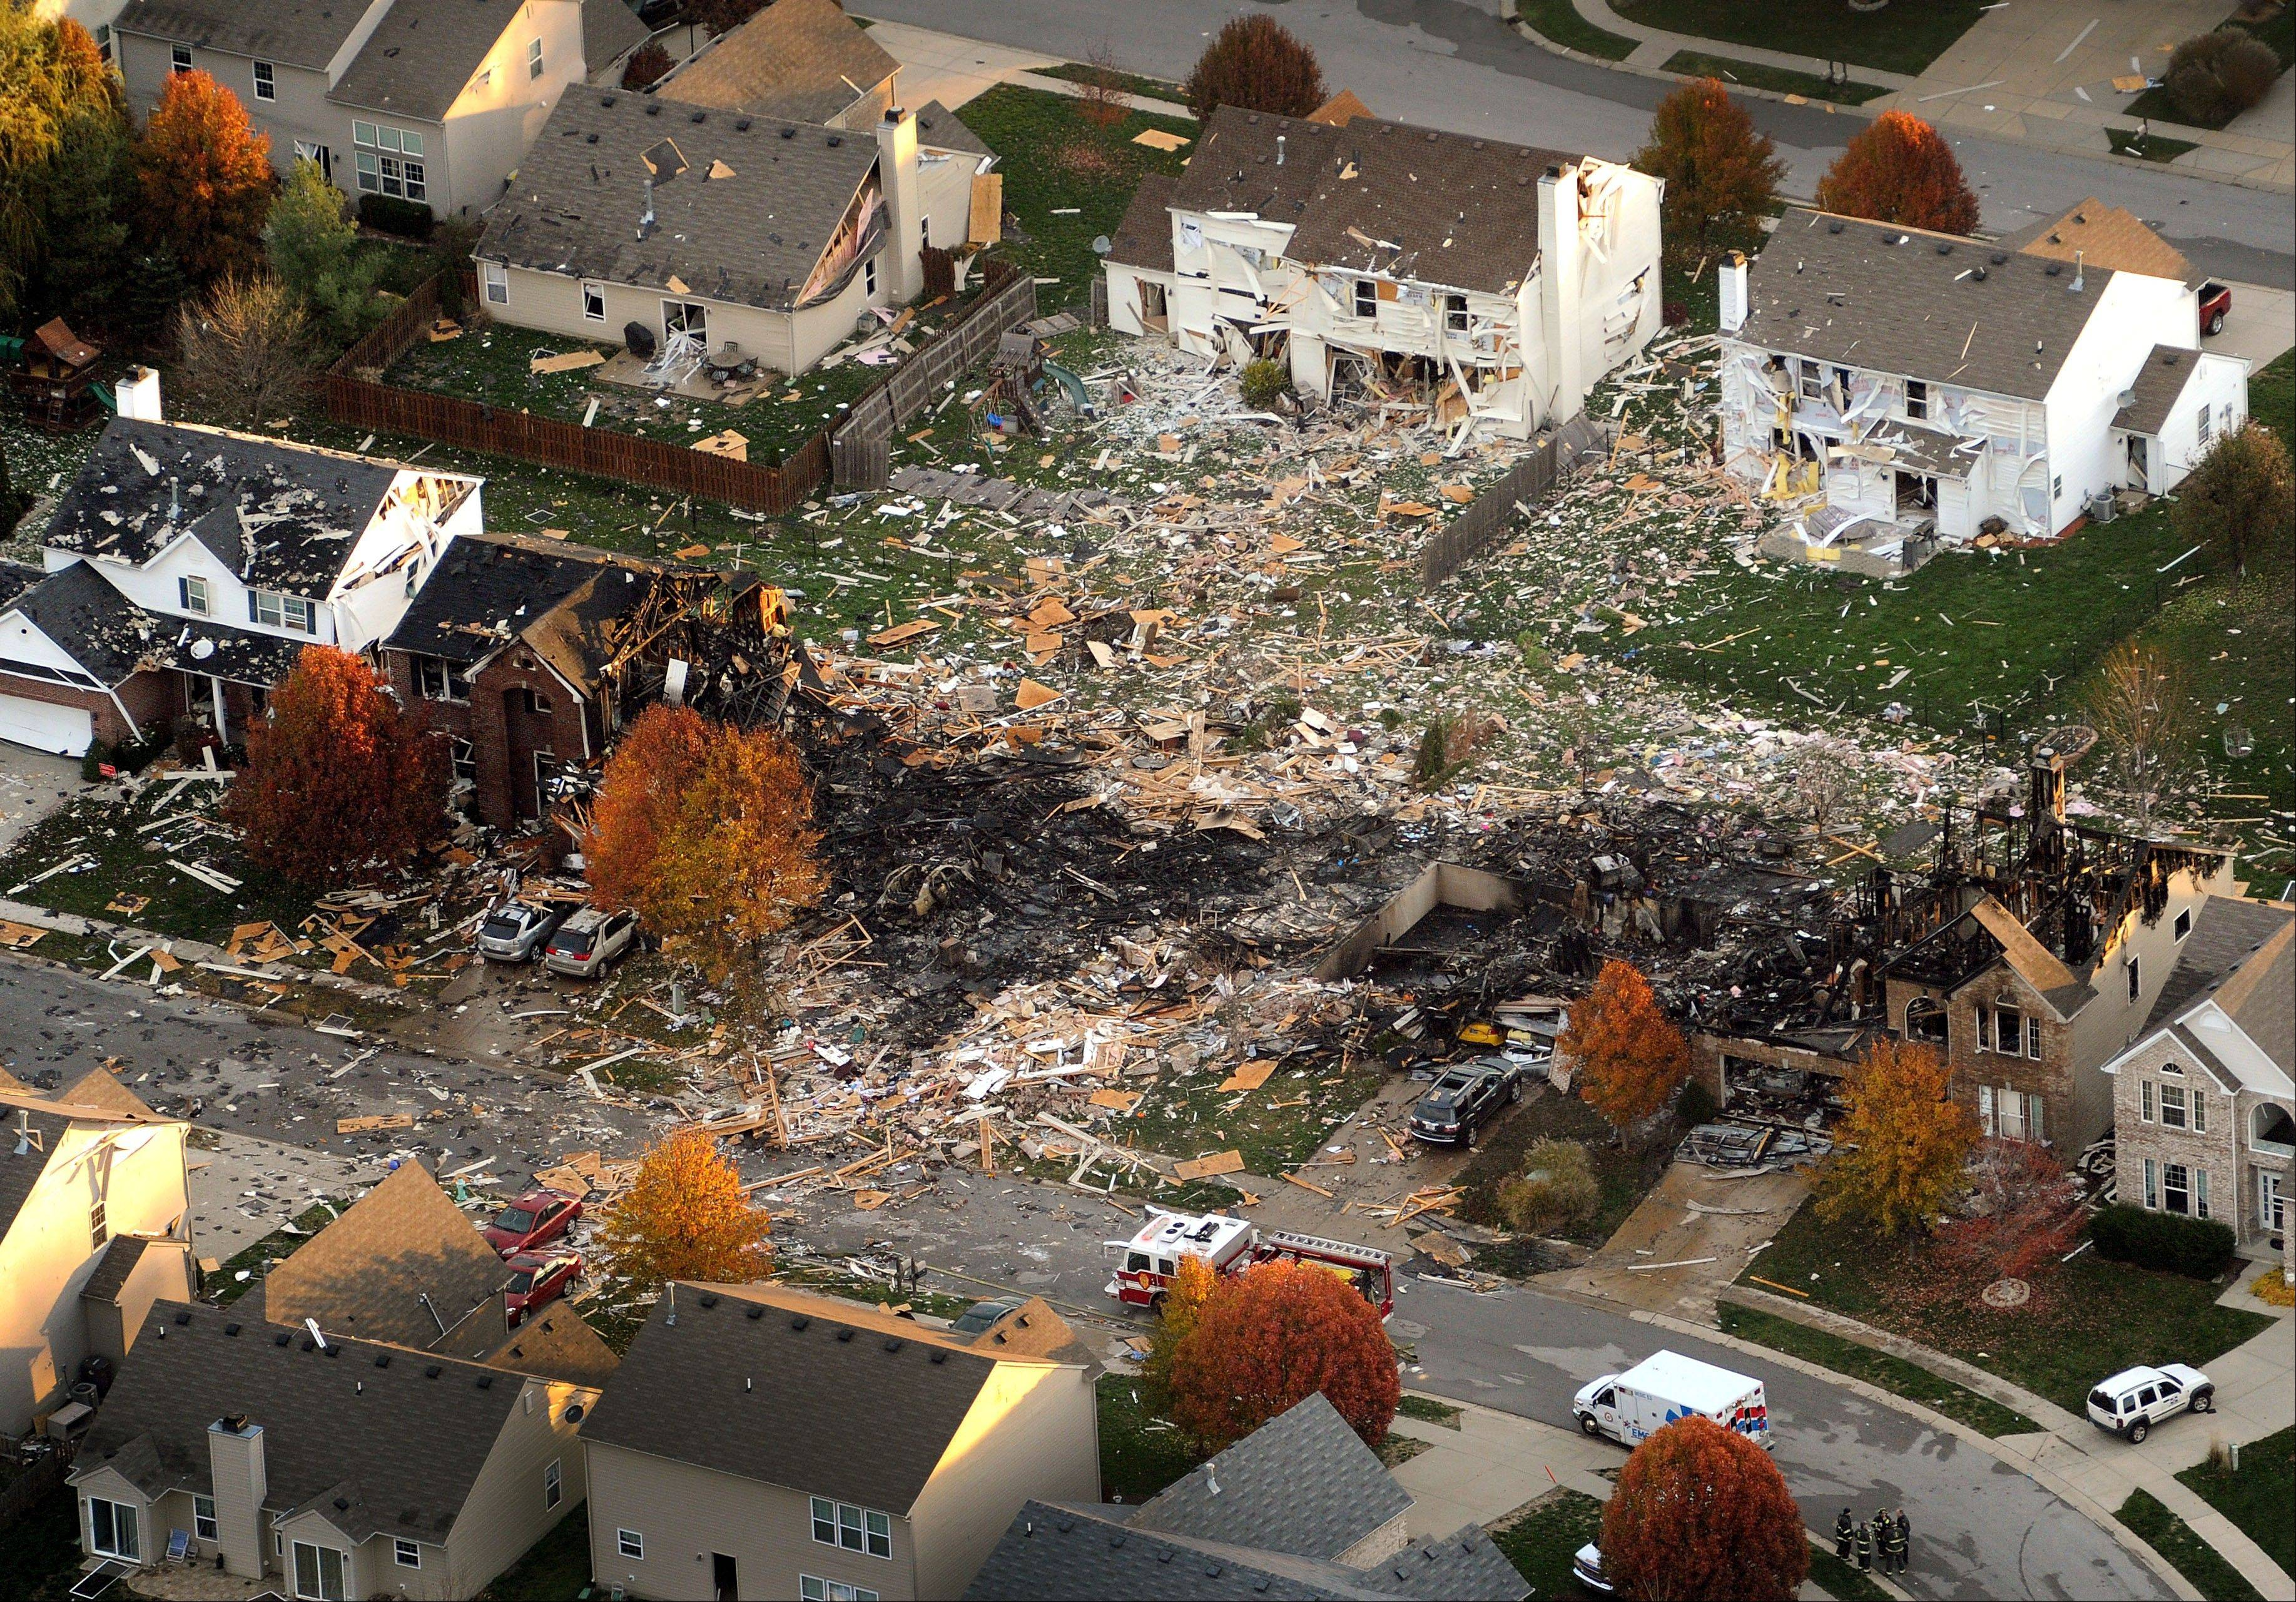 No suspects in Indiana home explosion